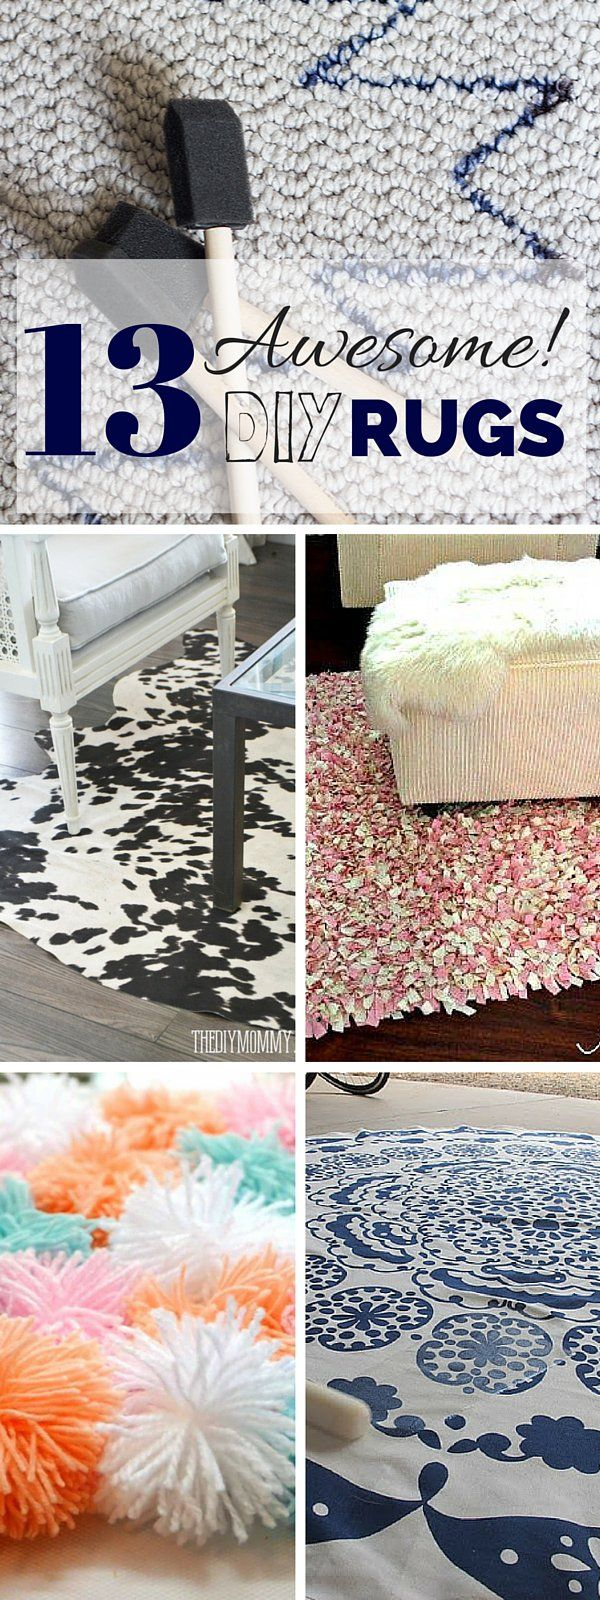 Best Diy Rugs Ideas On Pinterest Rug Making Rope Rug And - Diy rugs projects